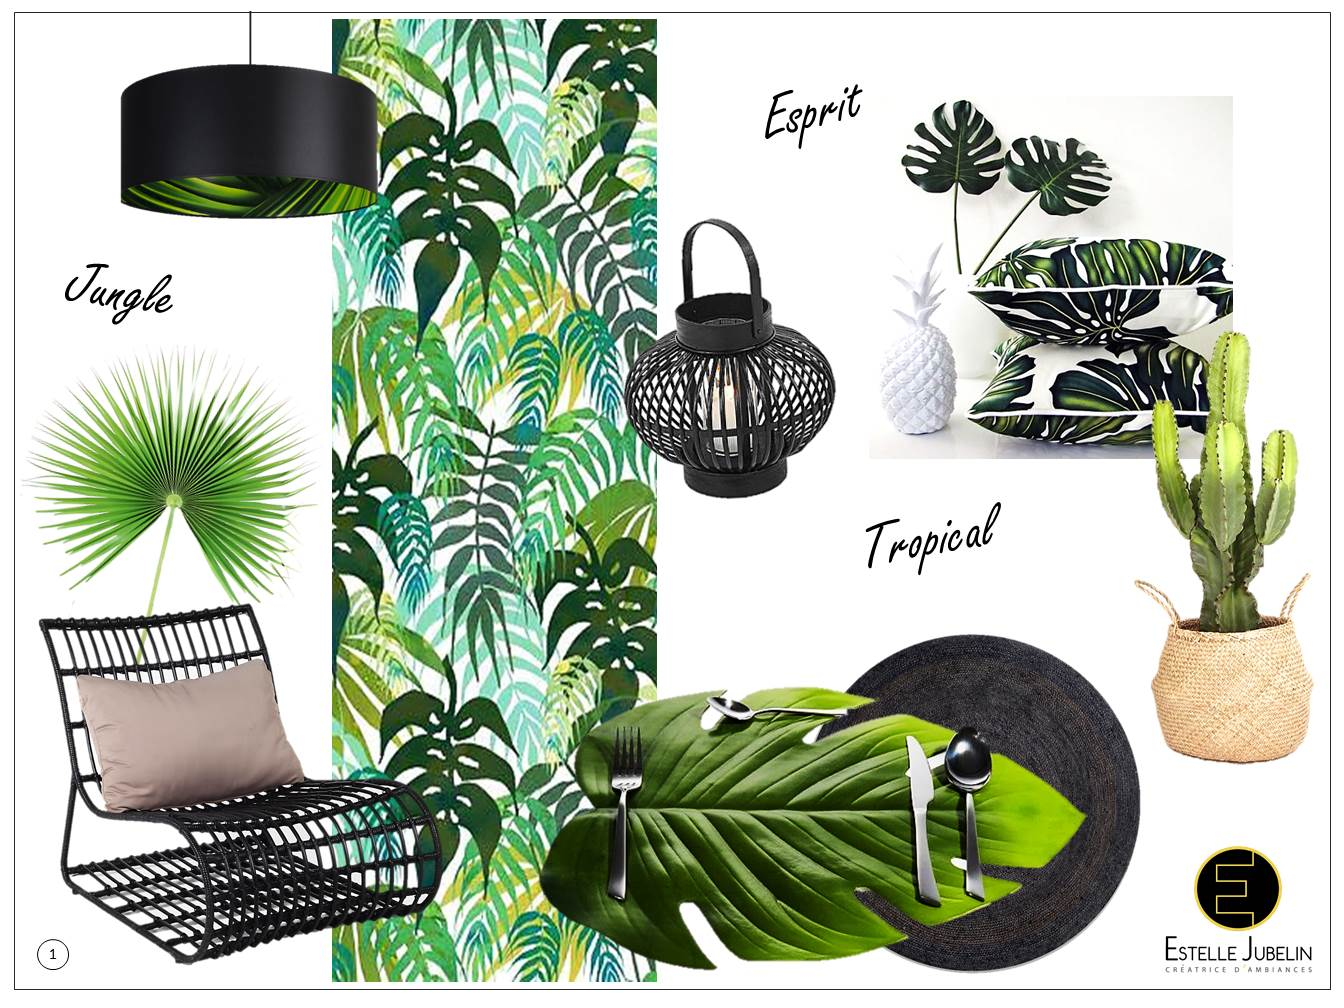 planche tendance decoration tropicale jungle 1 estelle jubelin decoratrice interieur reims. Black Bedroom Furniture Sets. Home Design Ideas